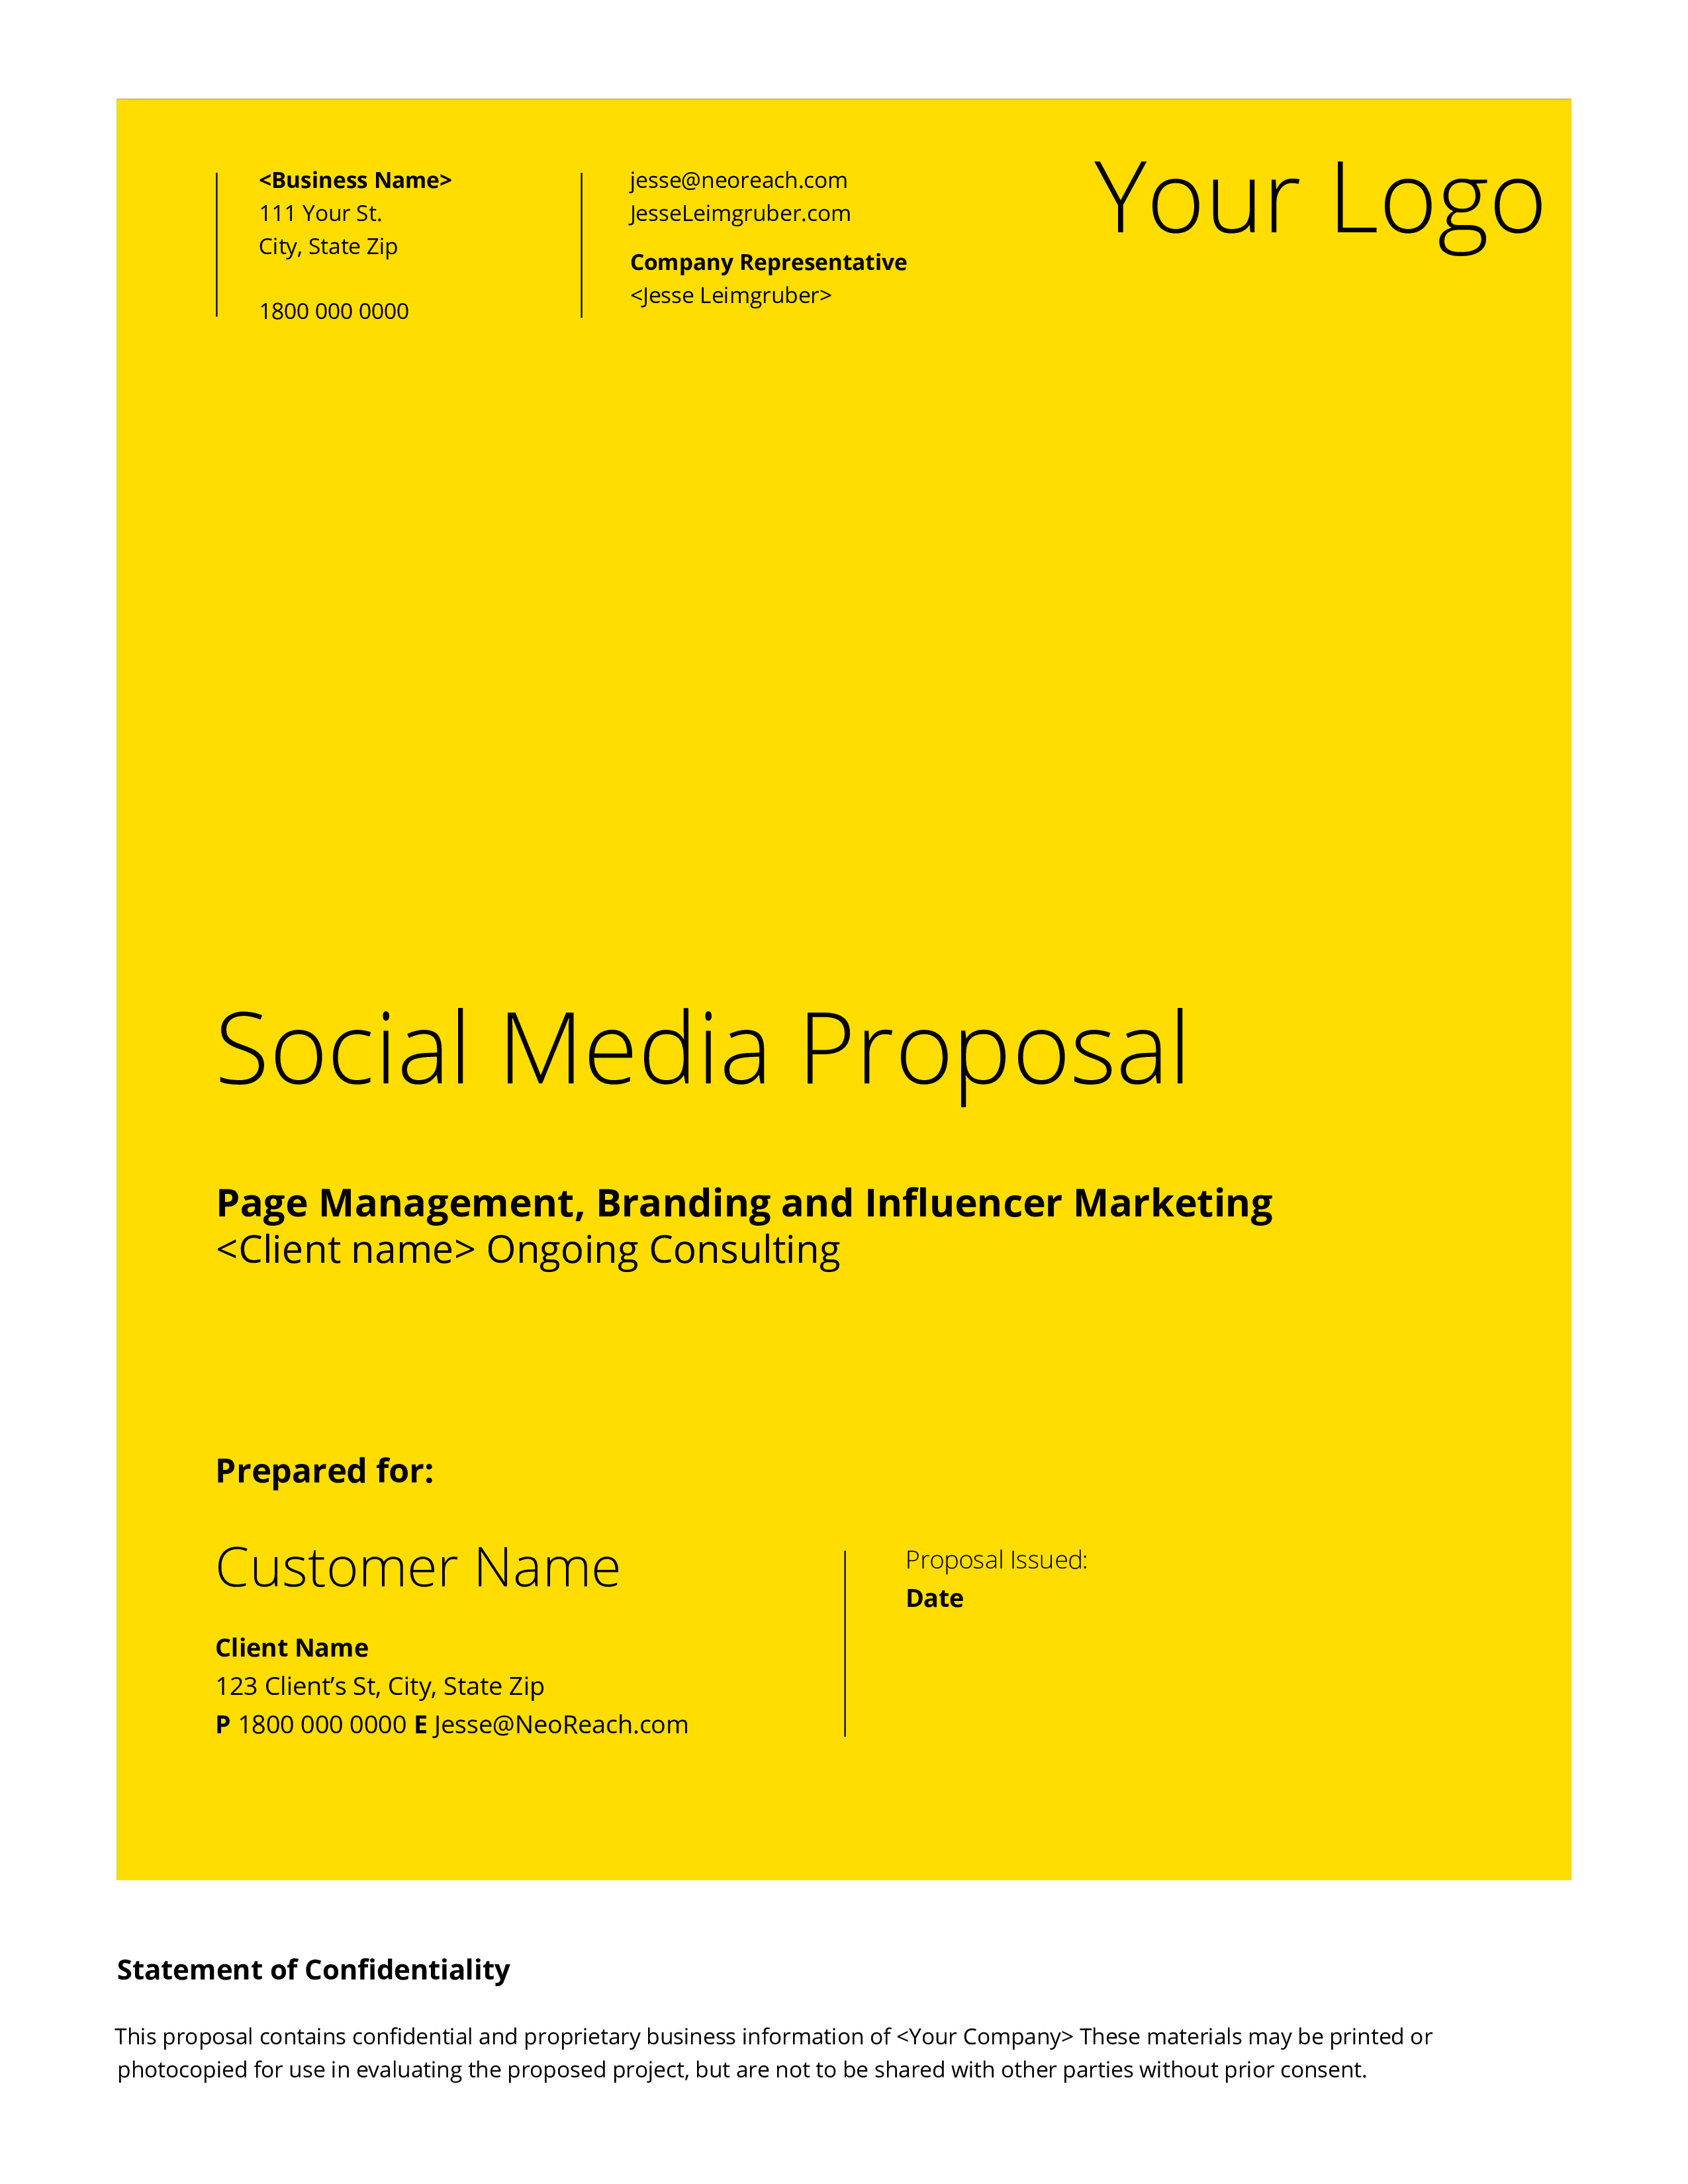 Company Social Media Proposal Main Image Download Template